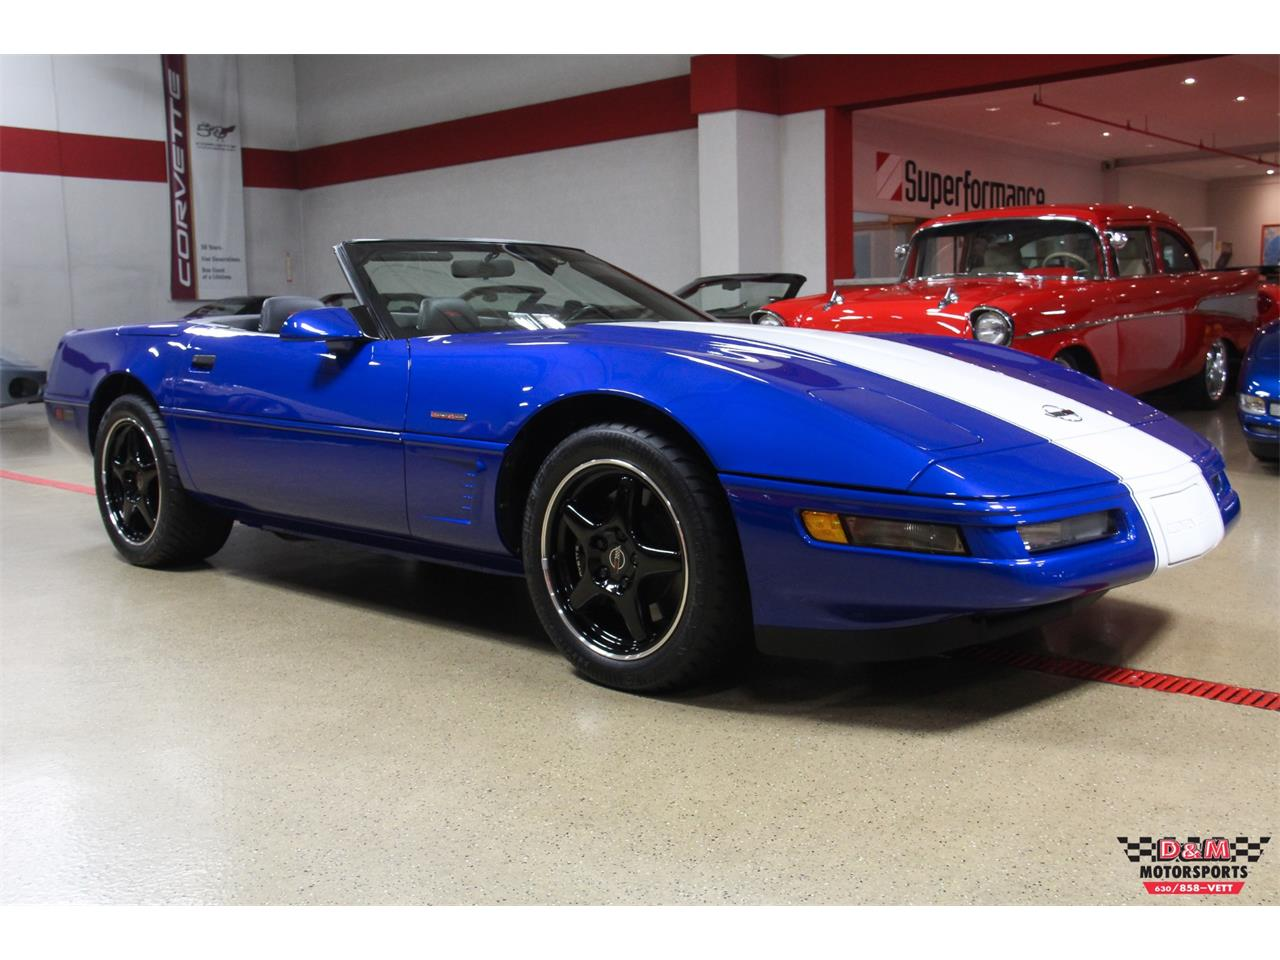 Large Picture of '96 Chevrolet Corvette located in Illinois - $44,995.00 Offered by D & M Motorsports - LV9Z